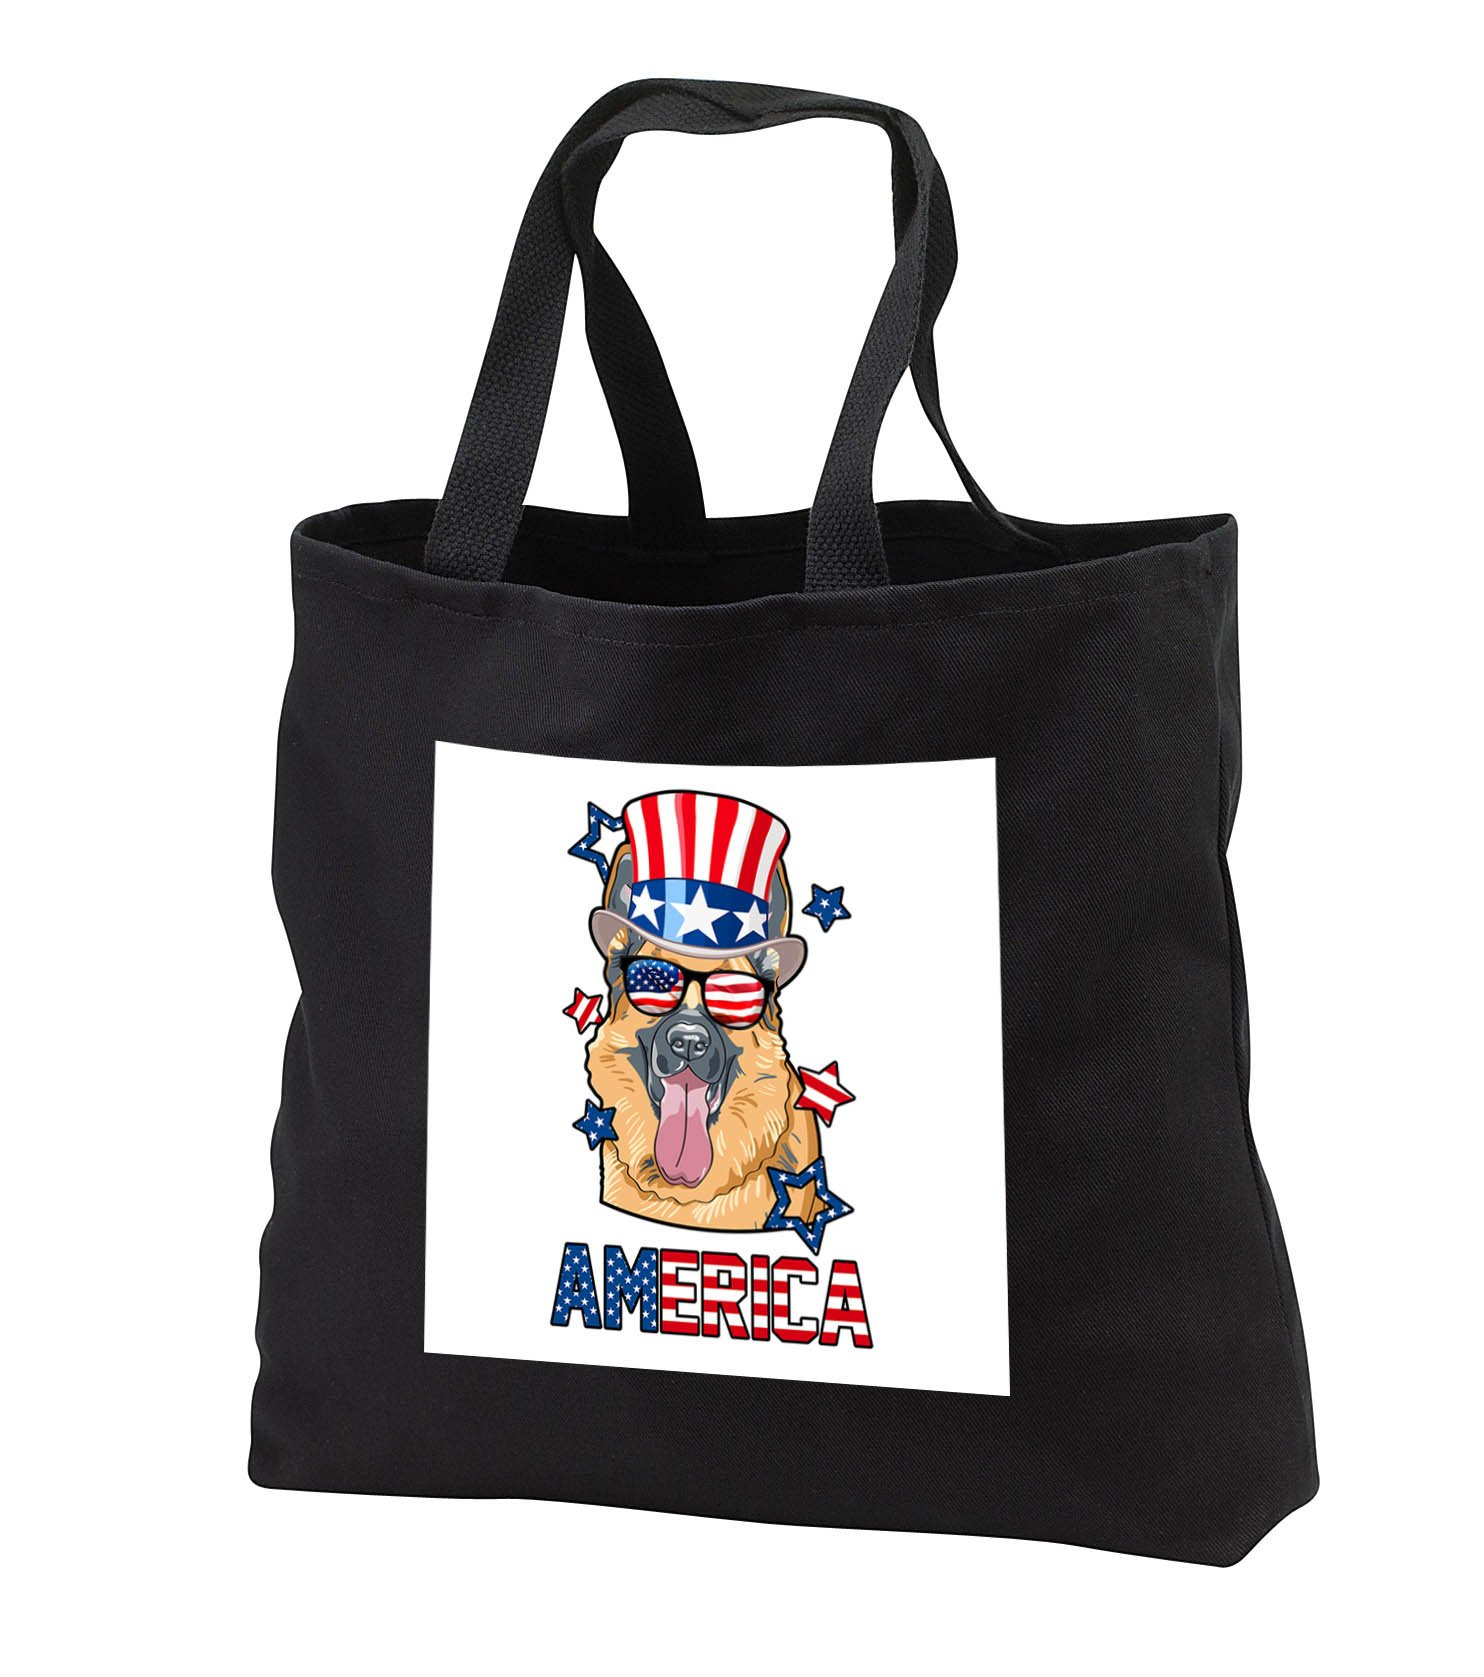 Patriotic American Dogs - German Shepherd With American Flag Sunglasses and Tophat Dog America - Tote Bags - Black Tote Bag 14w x 14h x 3d (tb_284225_1)